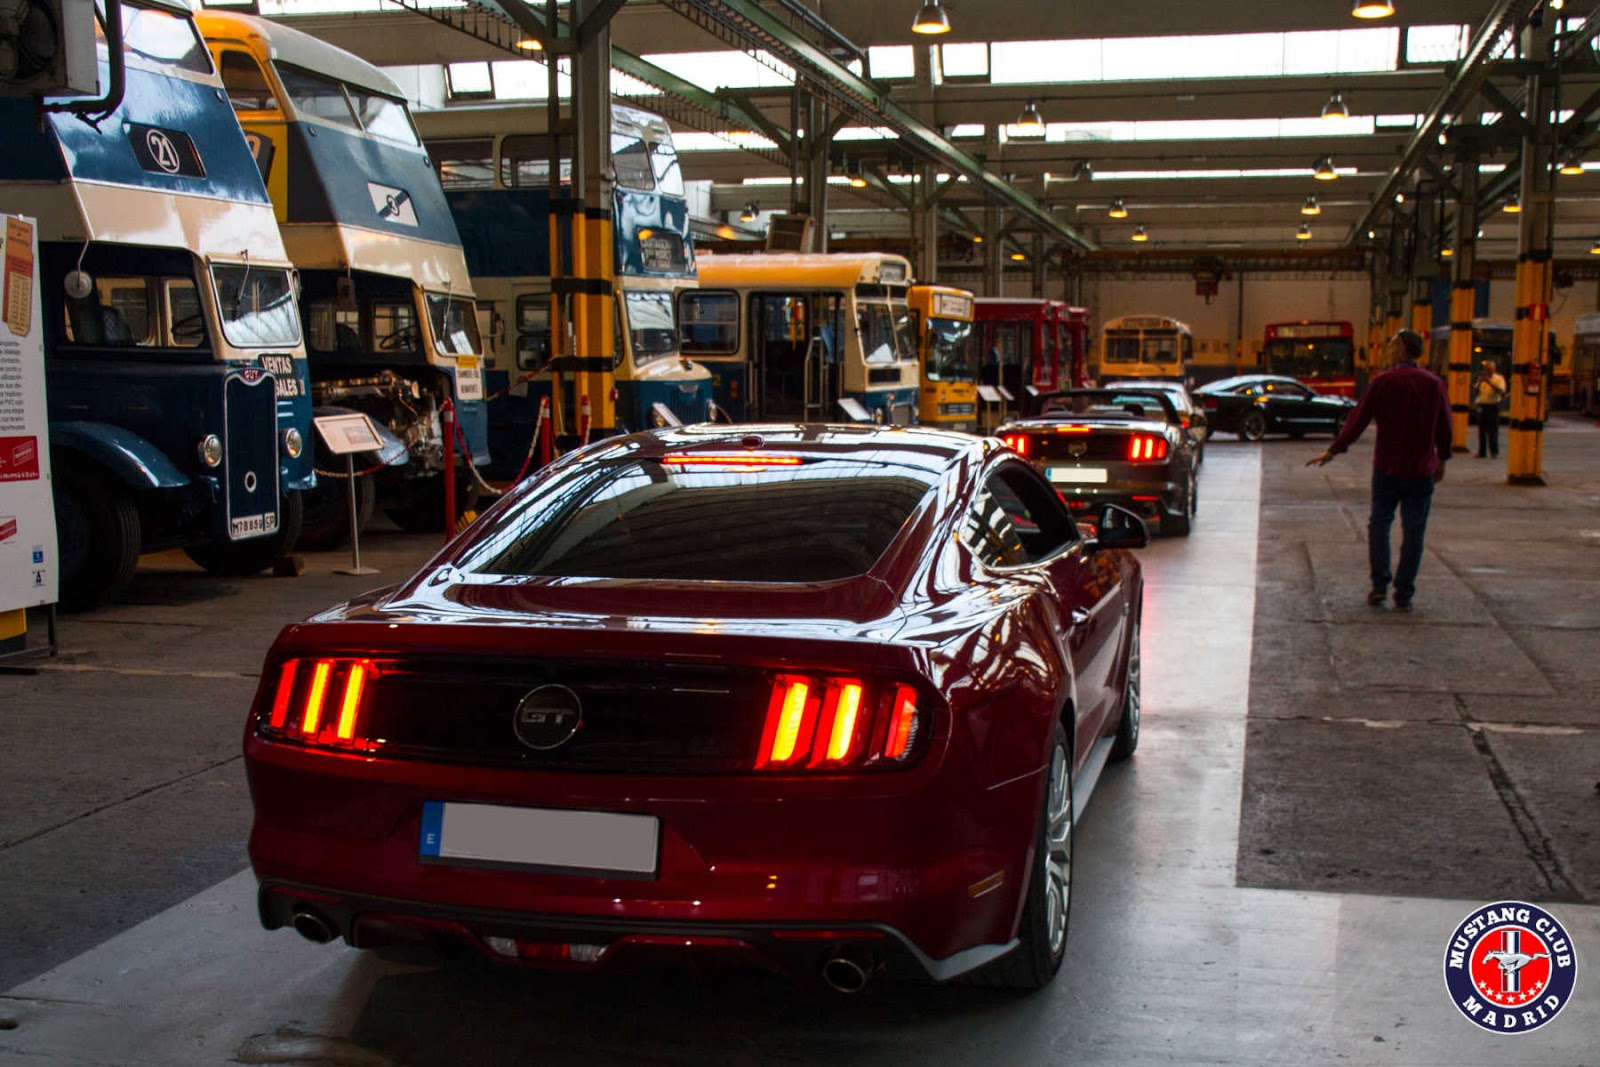 Mustang Club Madrid